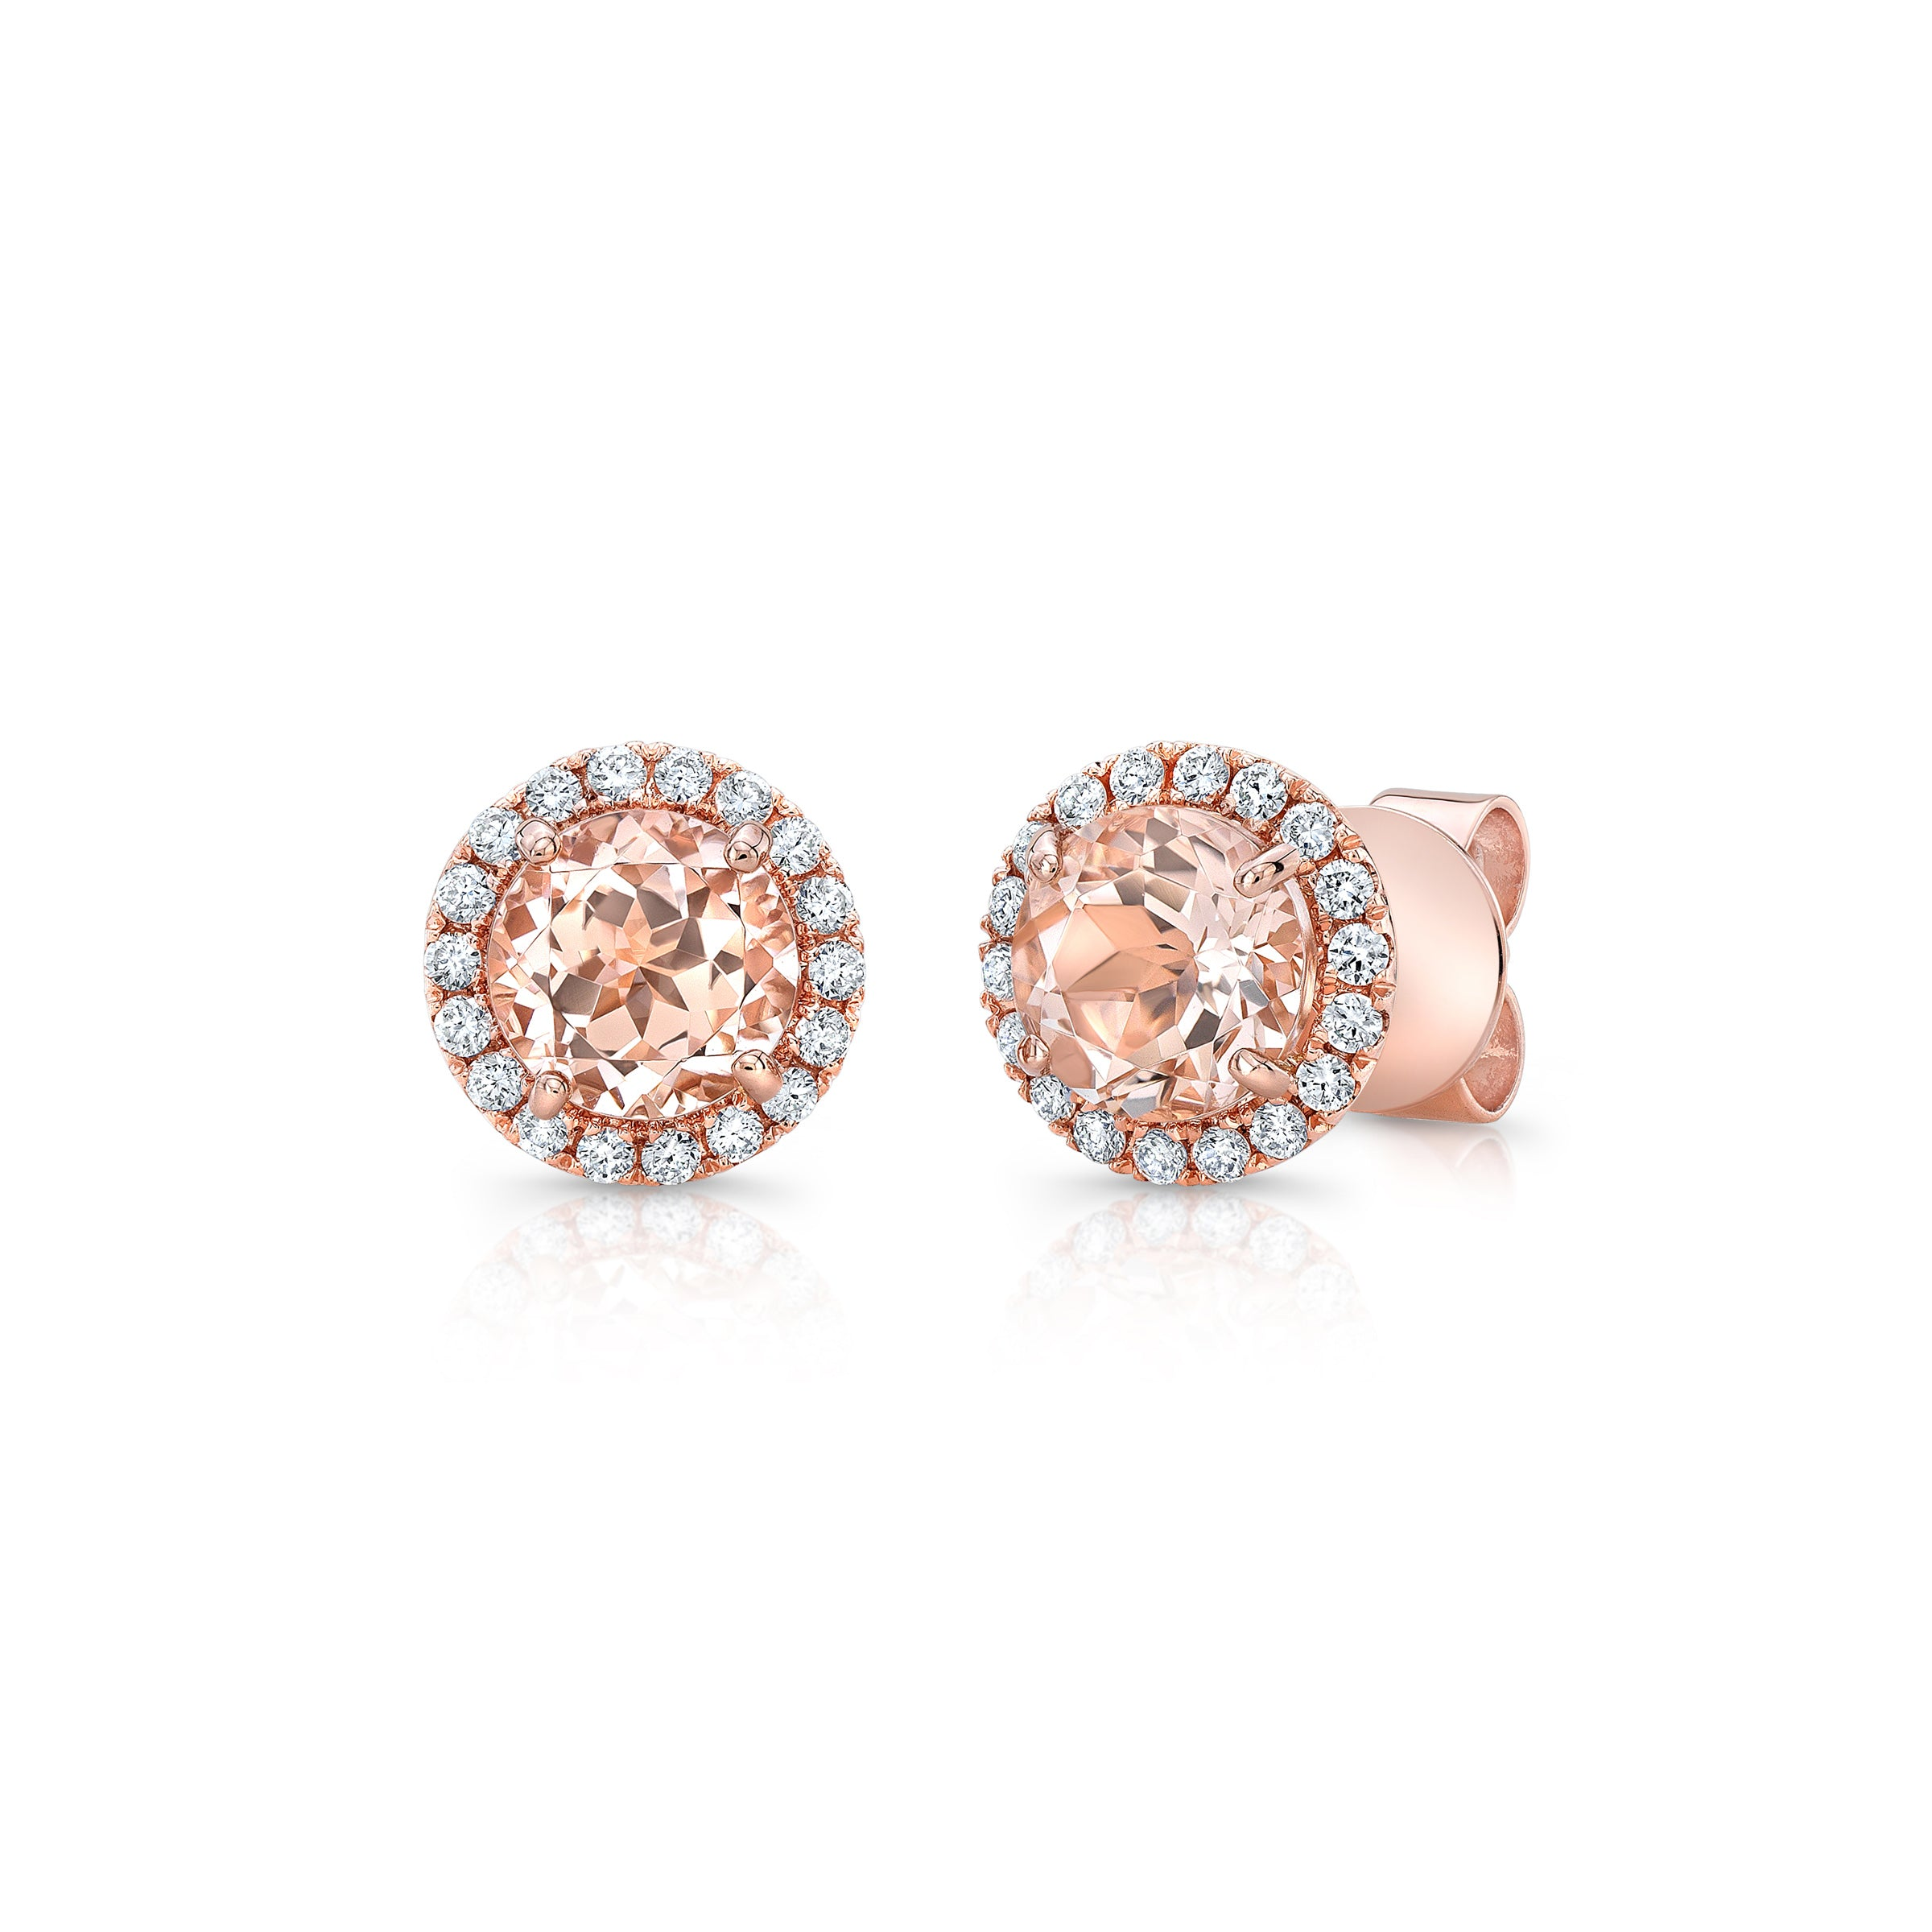 Morganite and Diamond Halo Earrings,14K Rose Gold